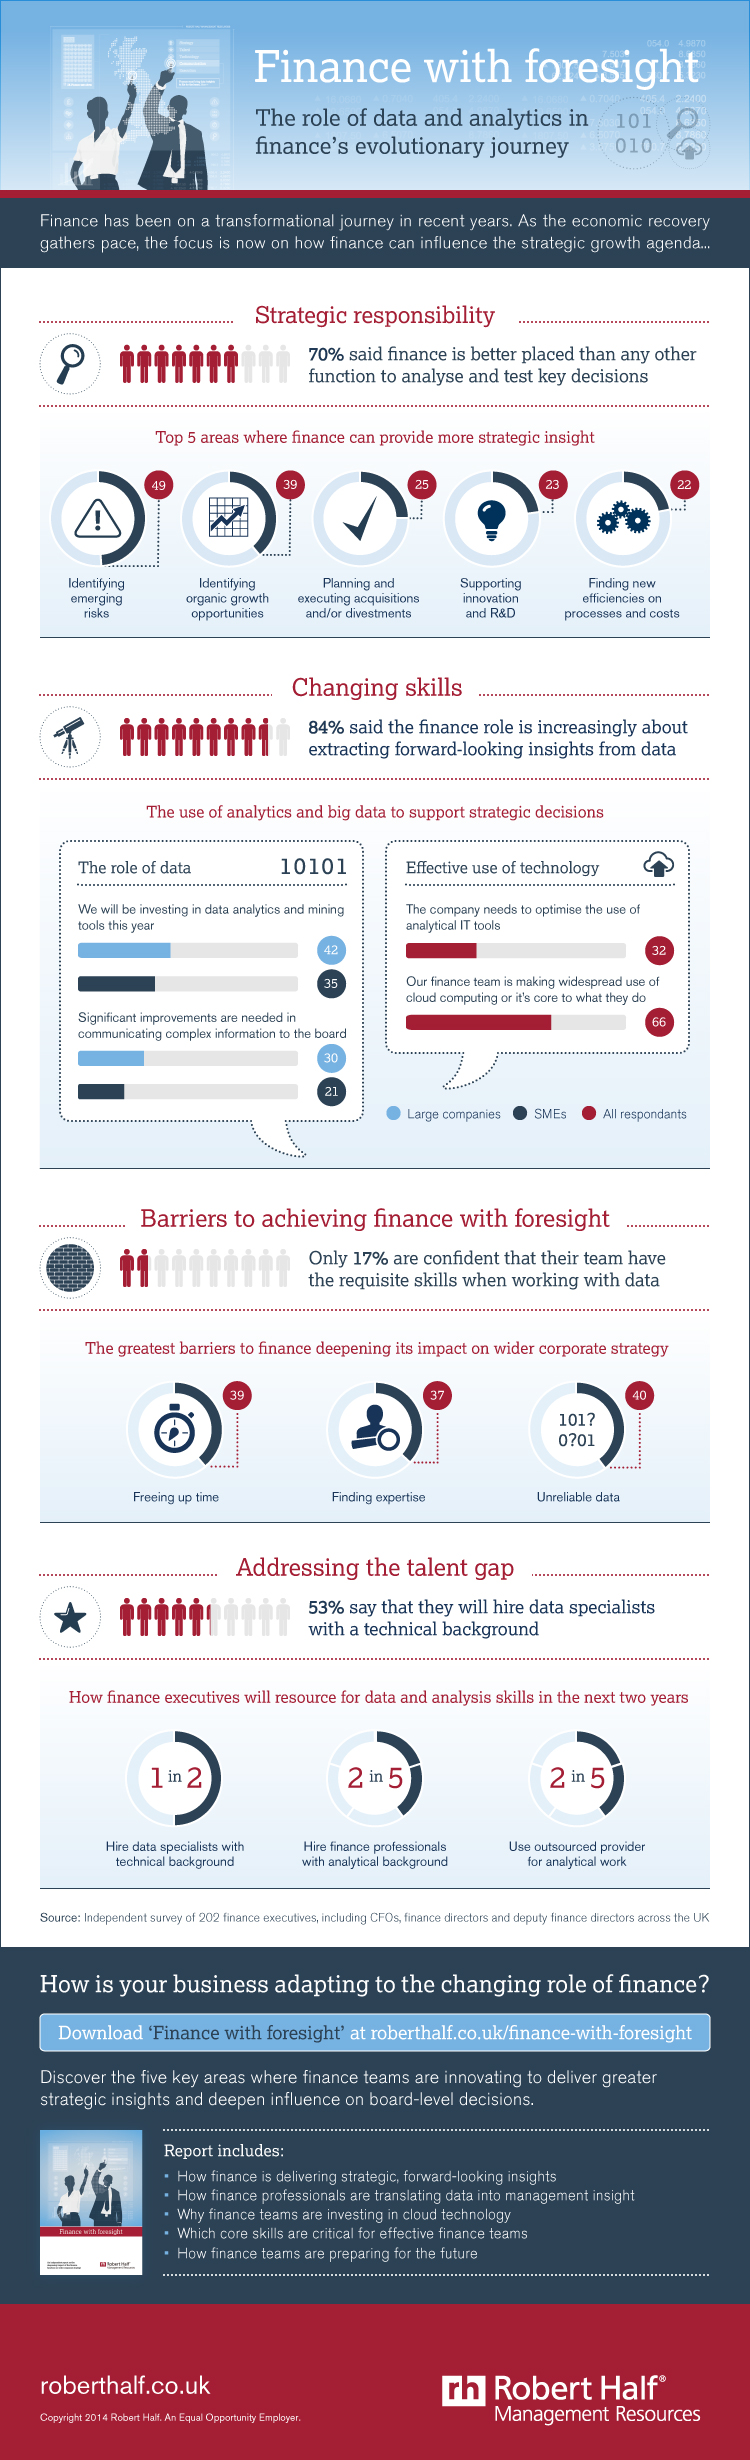 Finance with Foresight - The role of data and analytics in finance's evolutionary journey